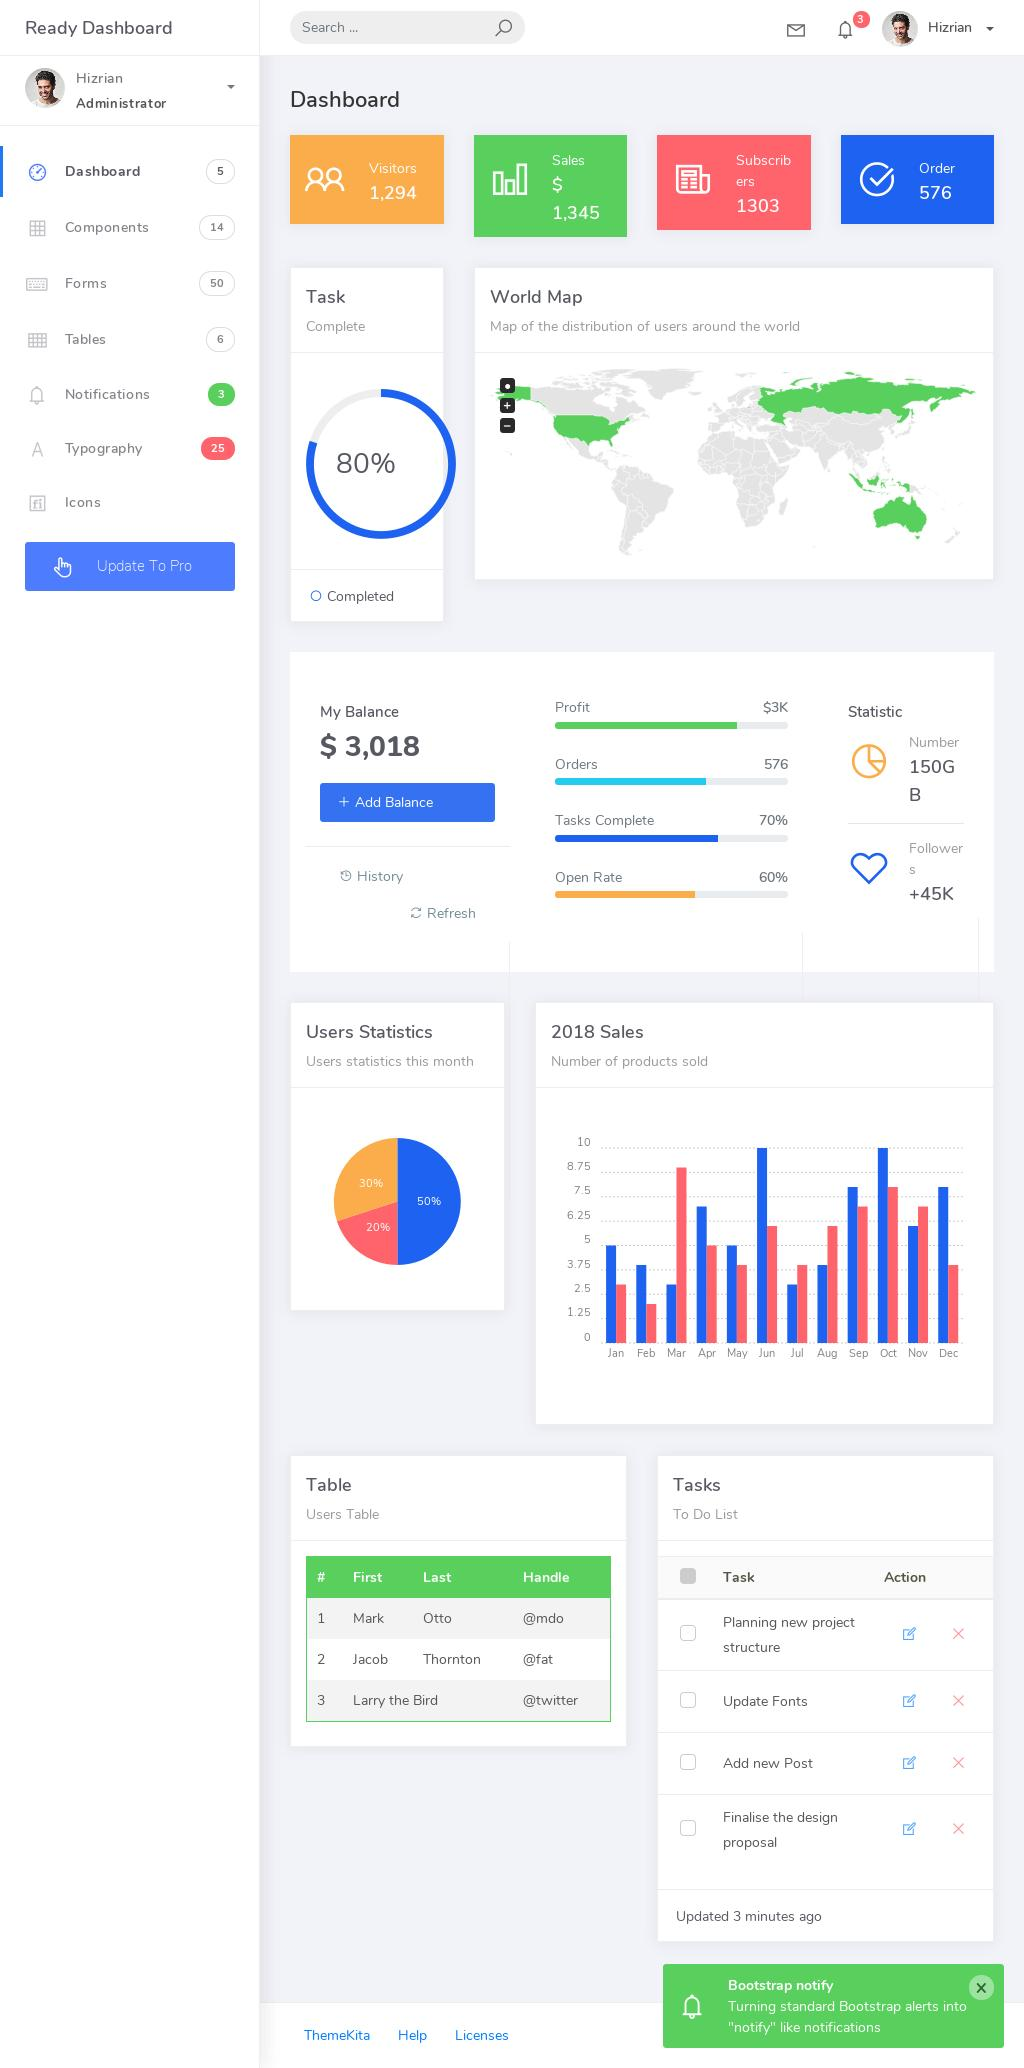 Инновационный шаблон админ-панели – Ready Dashboard.